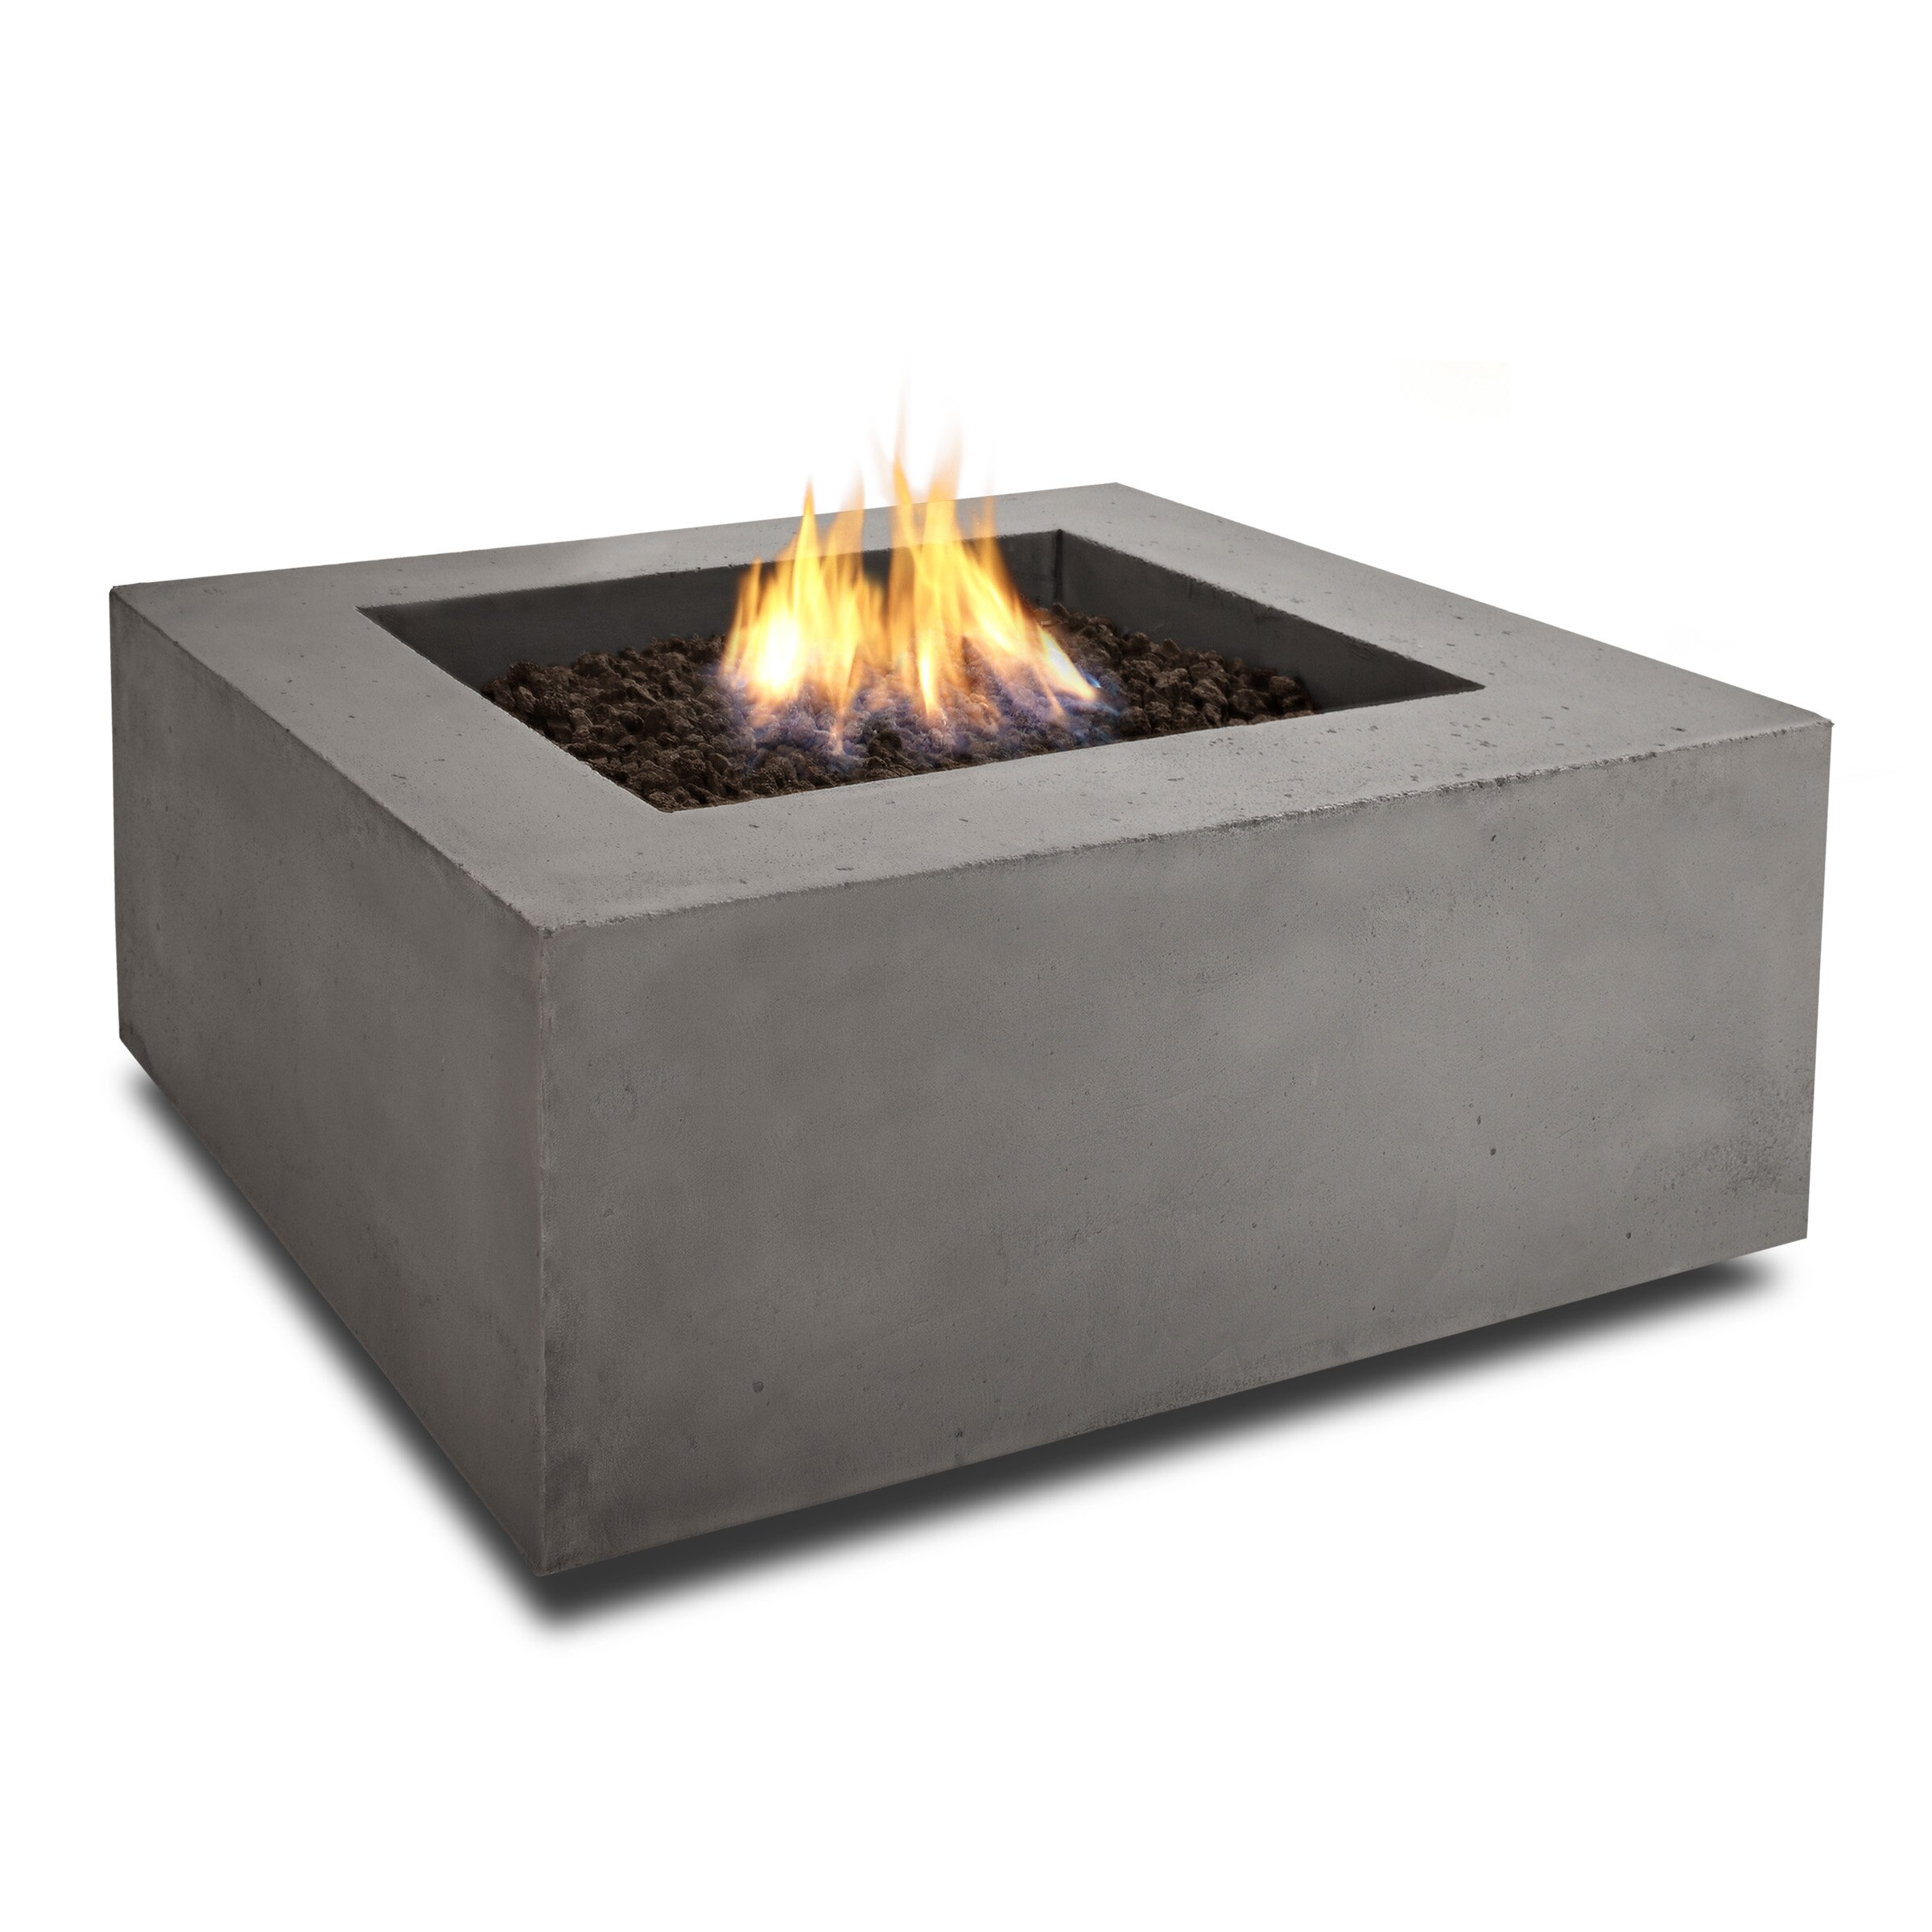 Baltic square natural gas fire pit table wayfair for Square fire ring